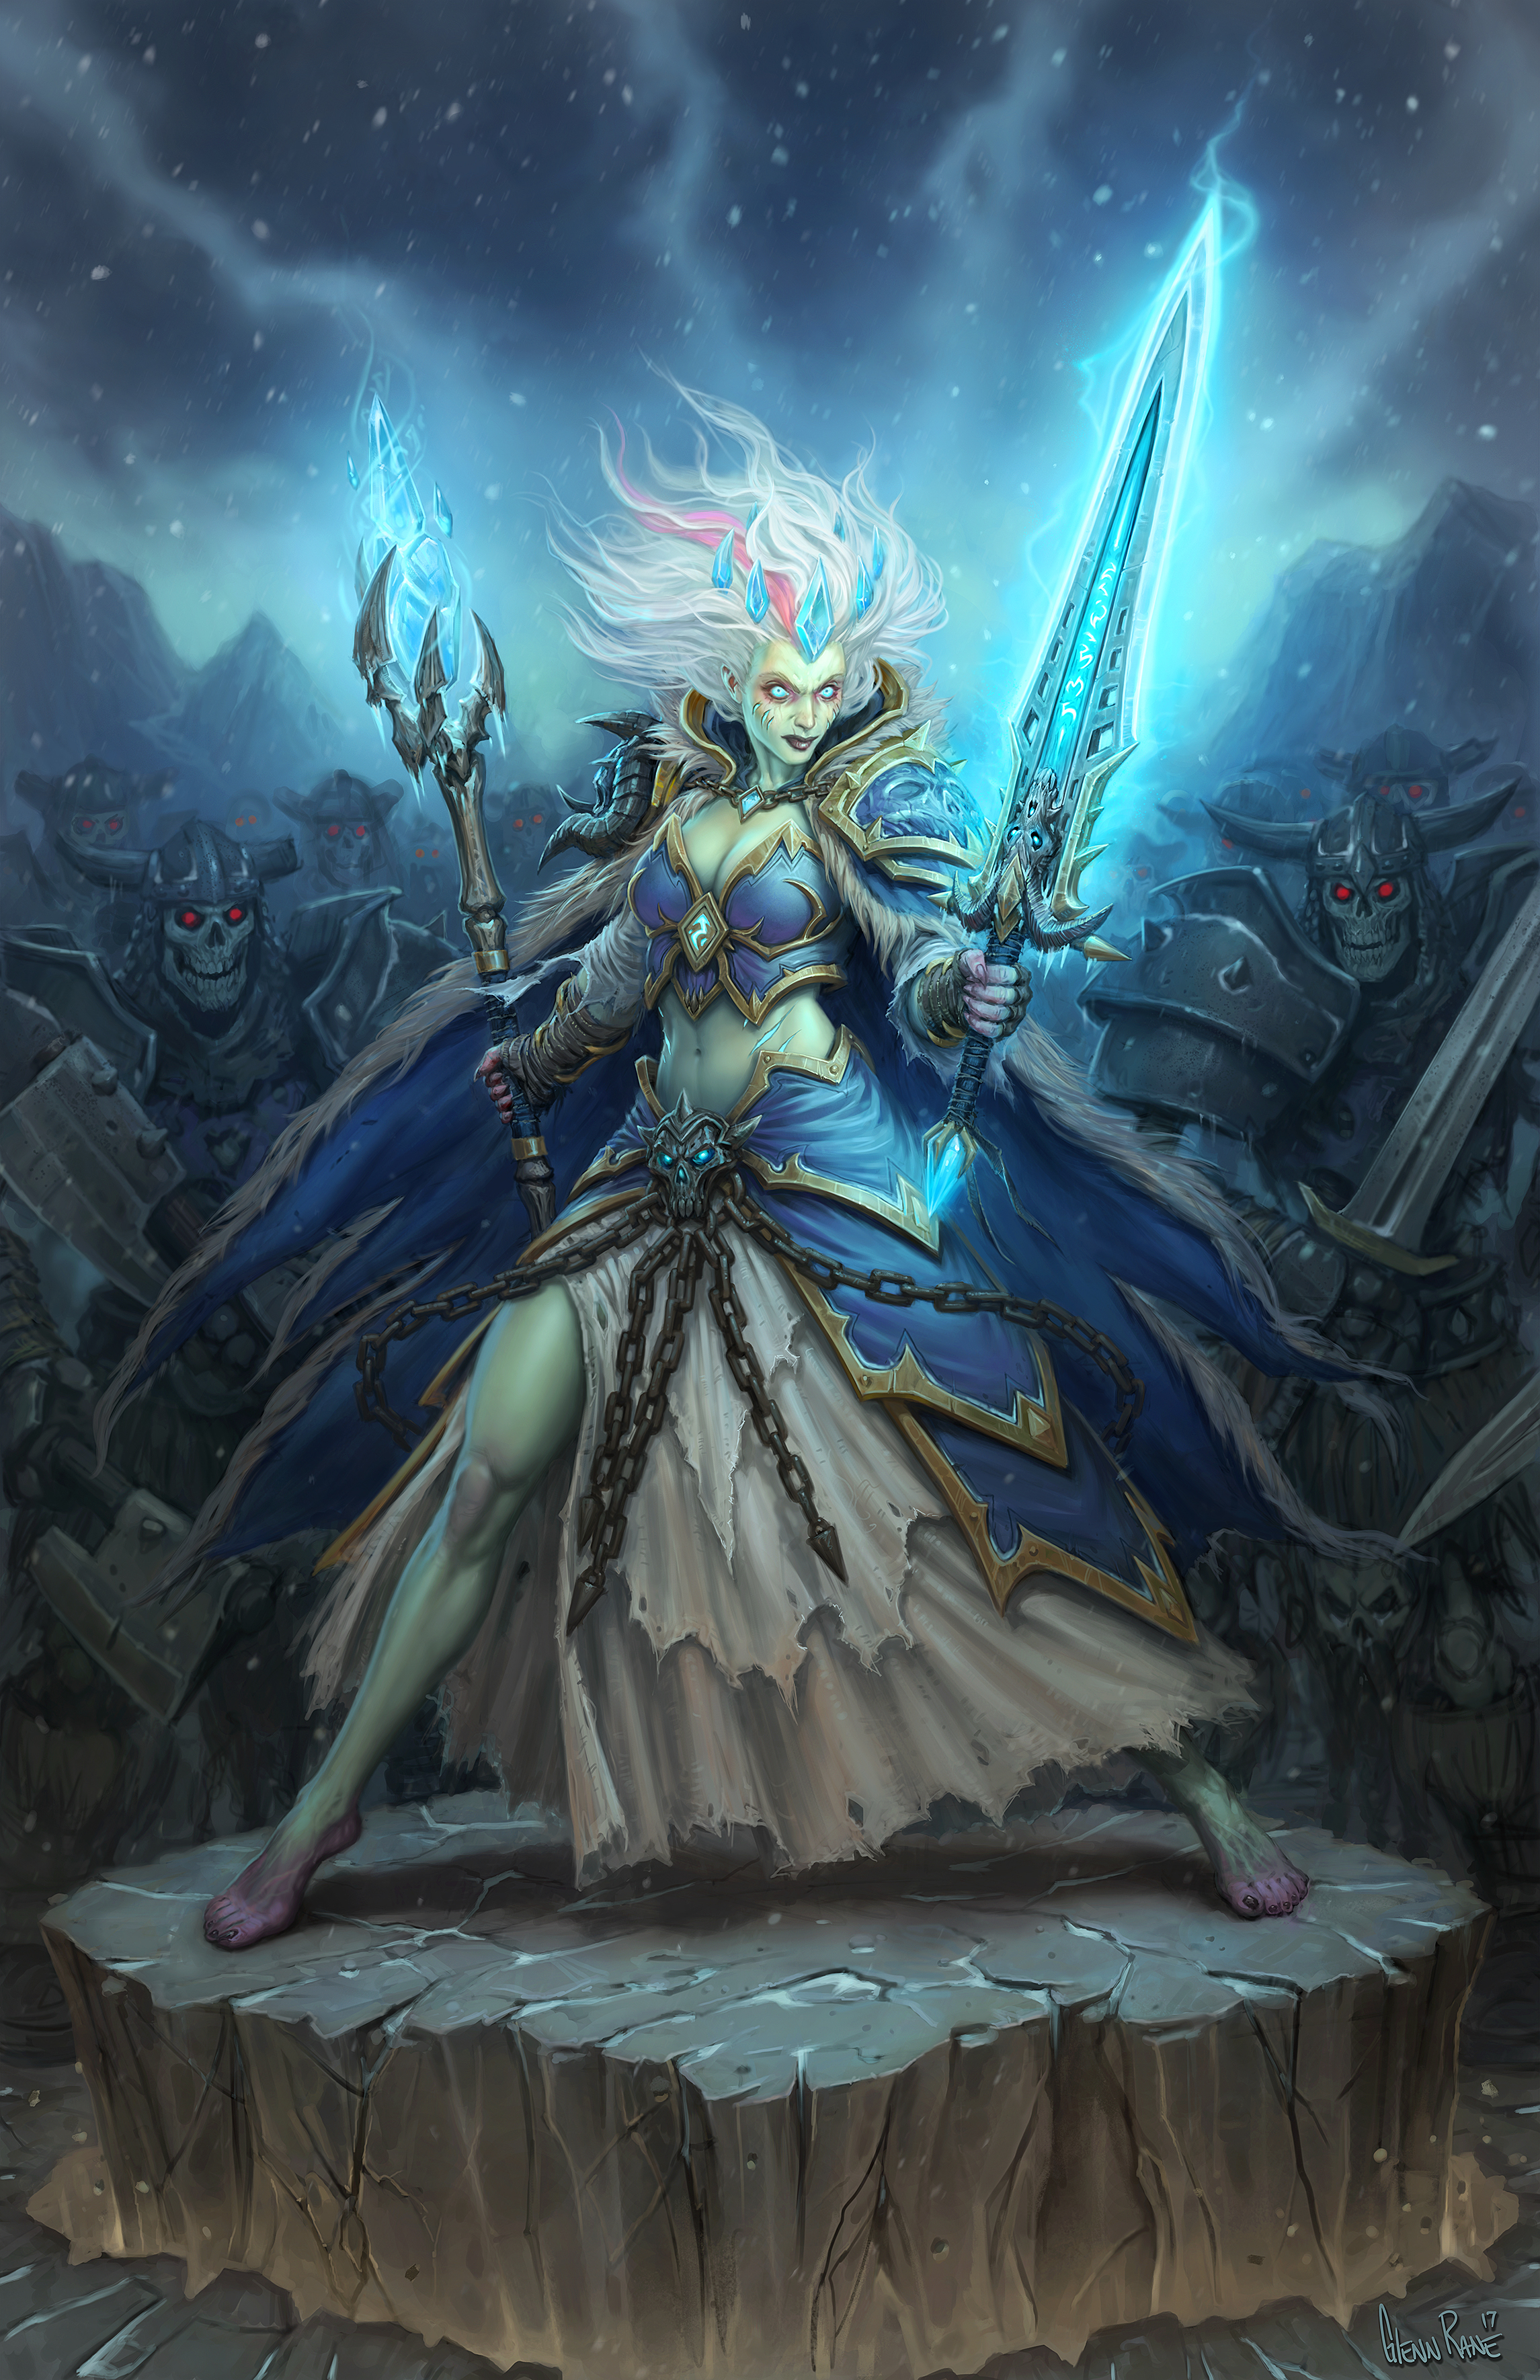 Devil May Cry Wallpaper Hd Frost Lich Jaina Full Art Looks Really Cool Hearthstone